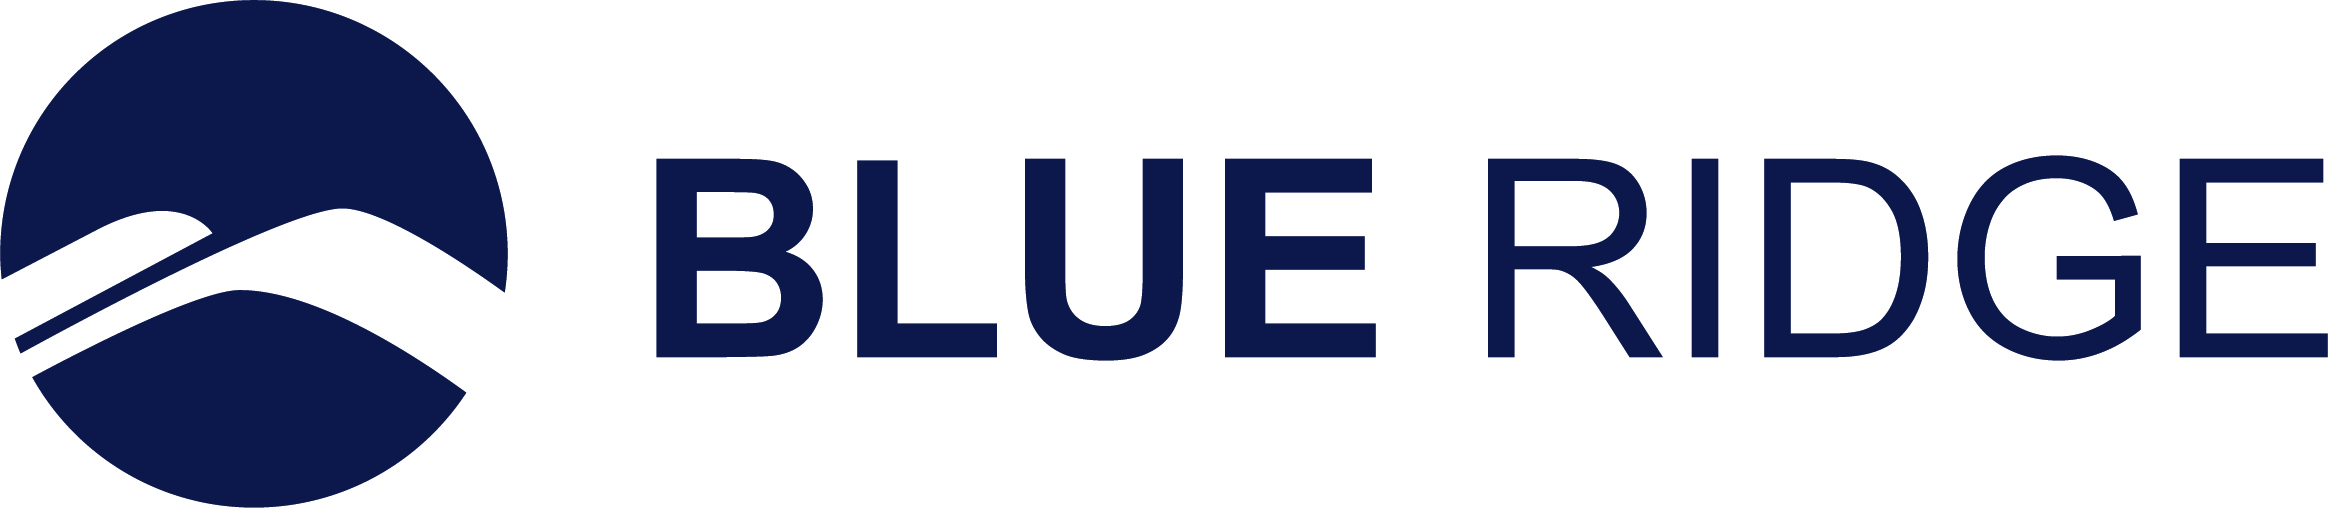 Blue Ridge Supply Chain and Pricing Optimization BLUEPRINT Conference Starts Tomorrow